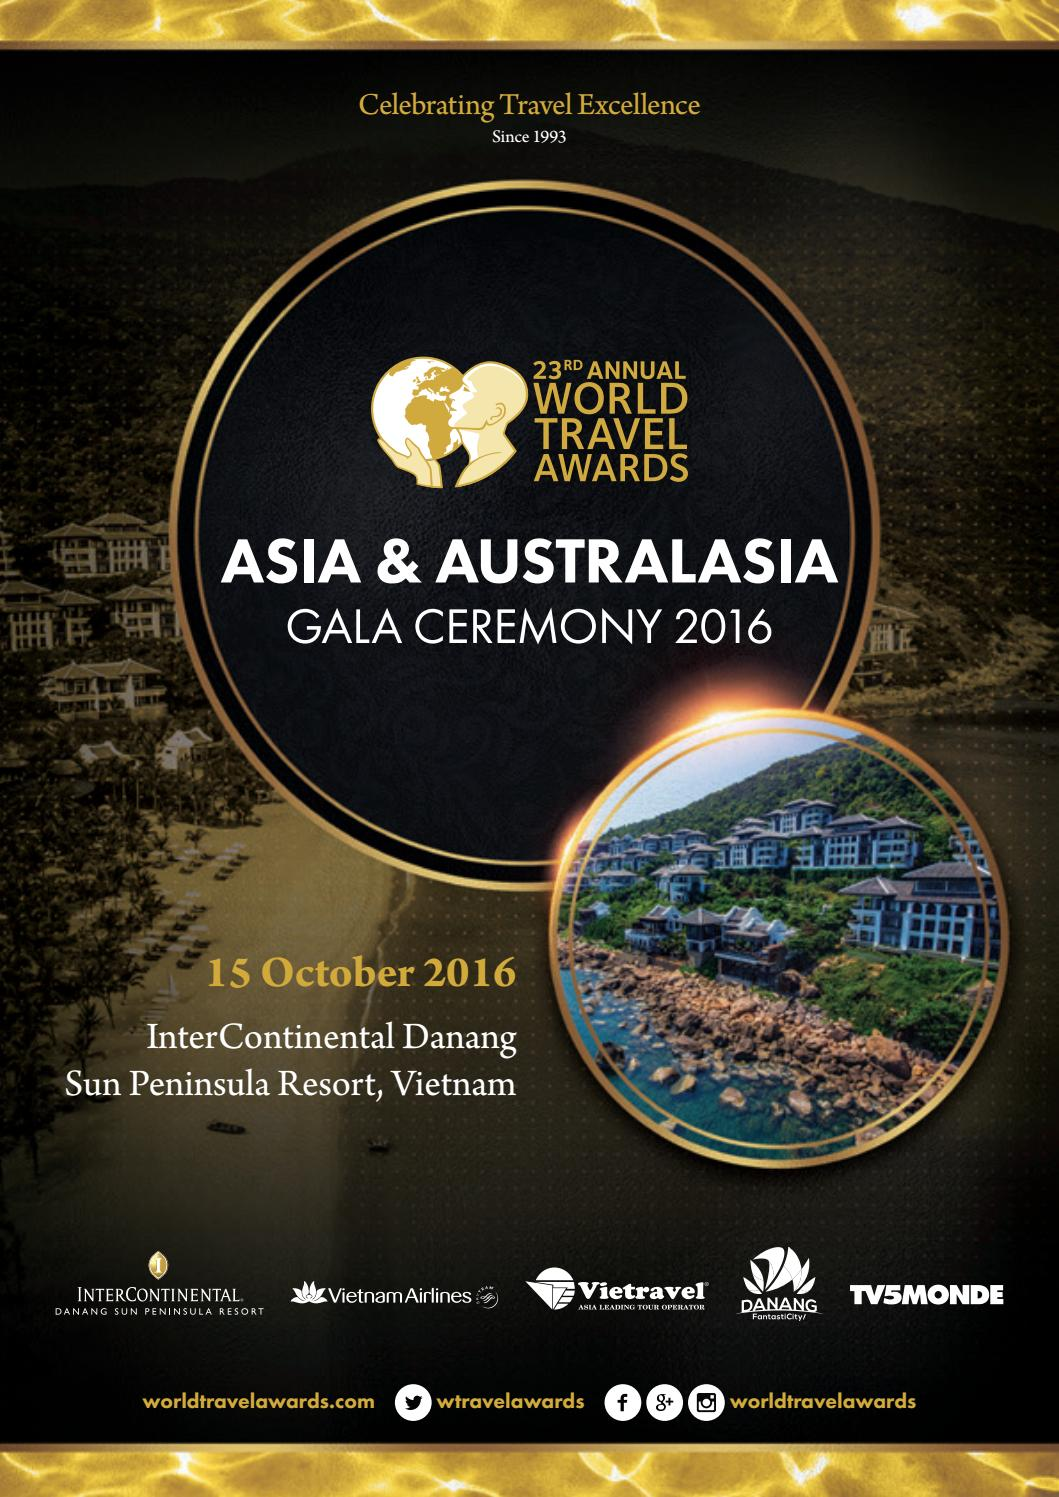 Personalised service at the villa club of kempinski hotel haitang bay - World Travel Awards Asia Australasia Gala Ceremony 2016 By World Travel Awards Issuu